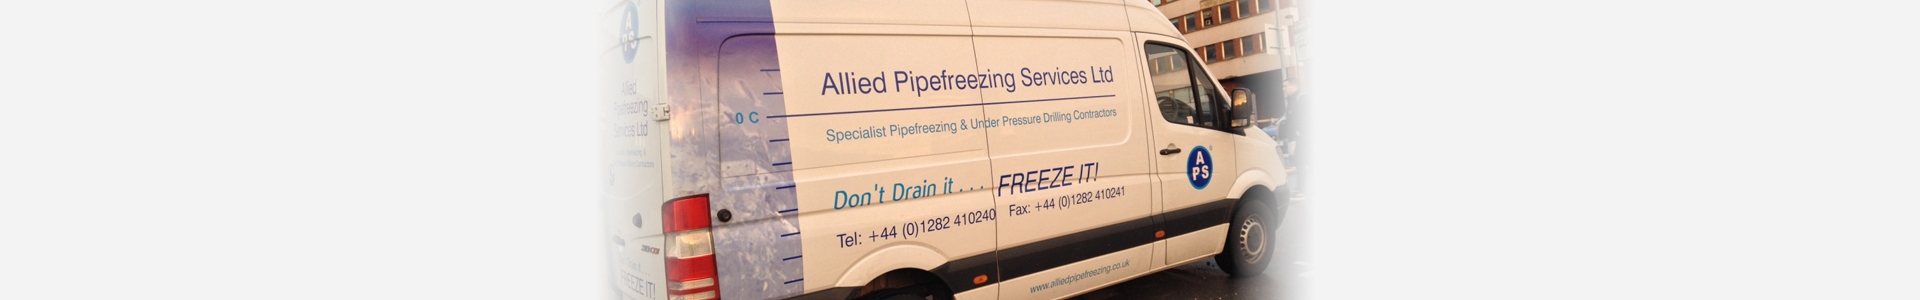 allied-pipe-freezing-services-ltd-accreditations